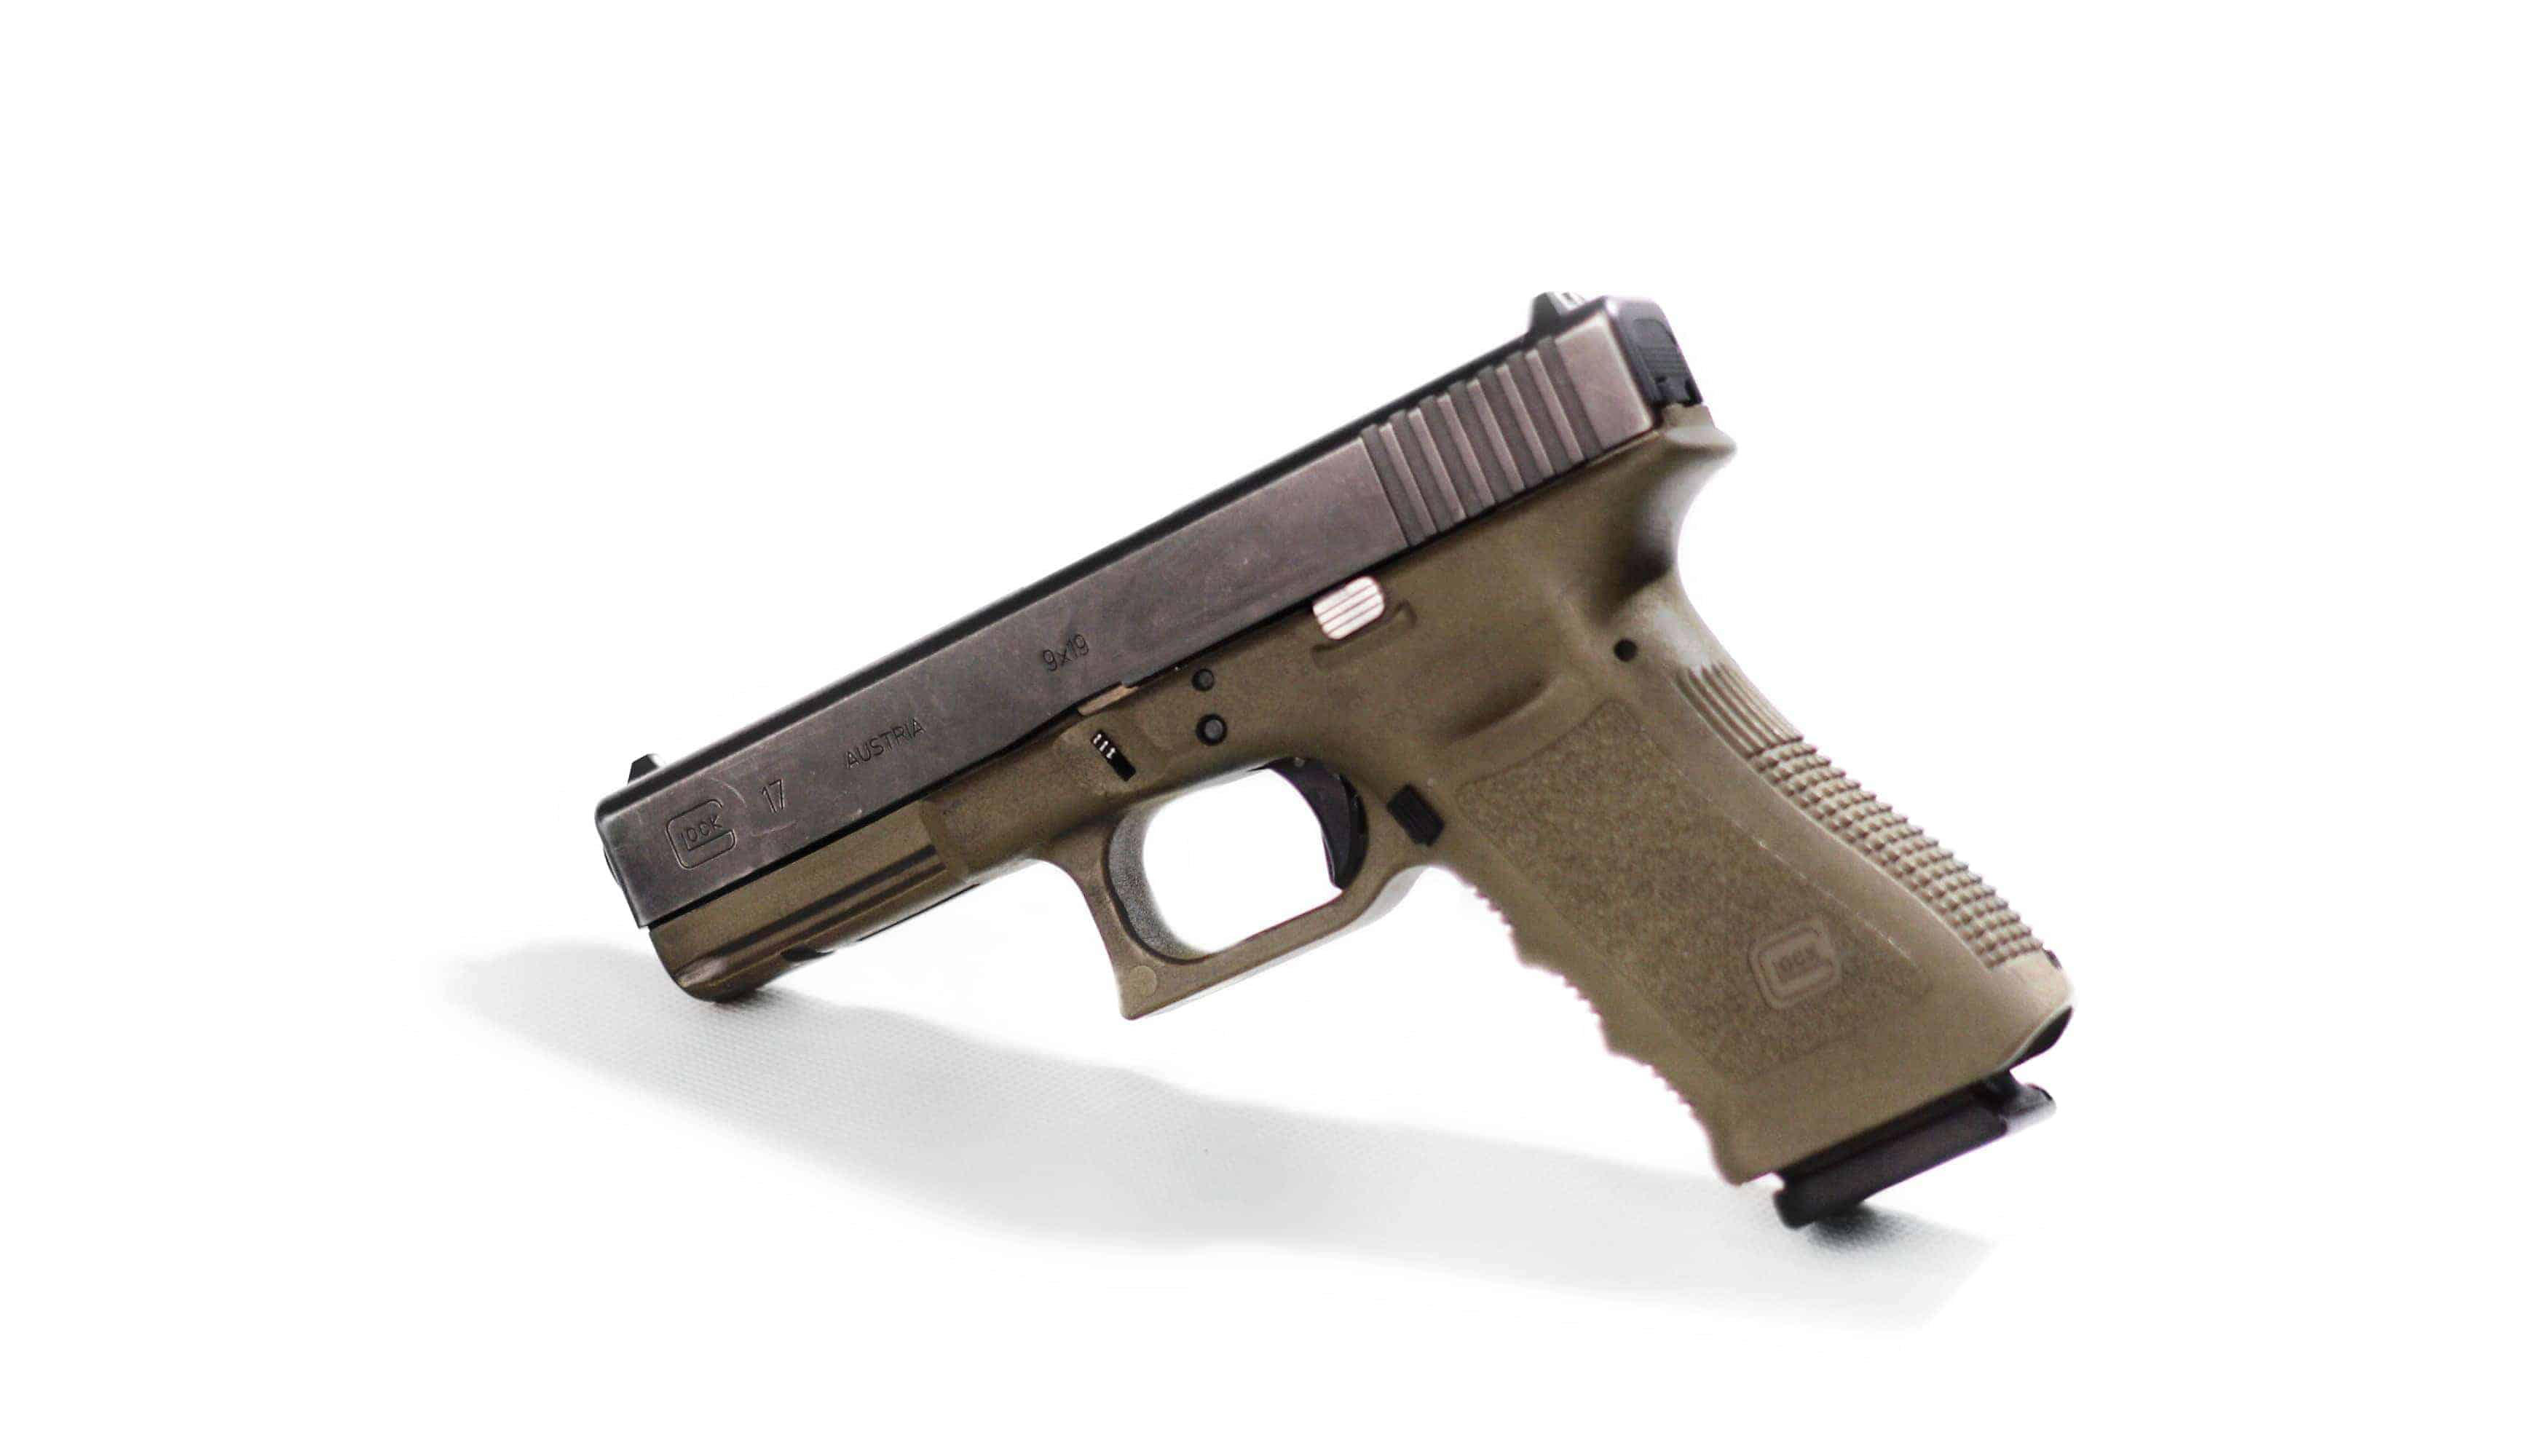 https://strzelnicabojowa.pl/uploads/guns/Glock17ol(9x19mm)-WEB-WIDE.JPG